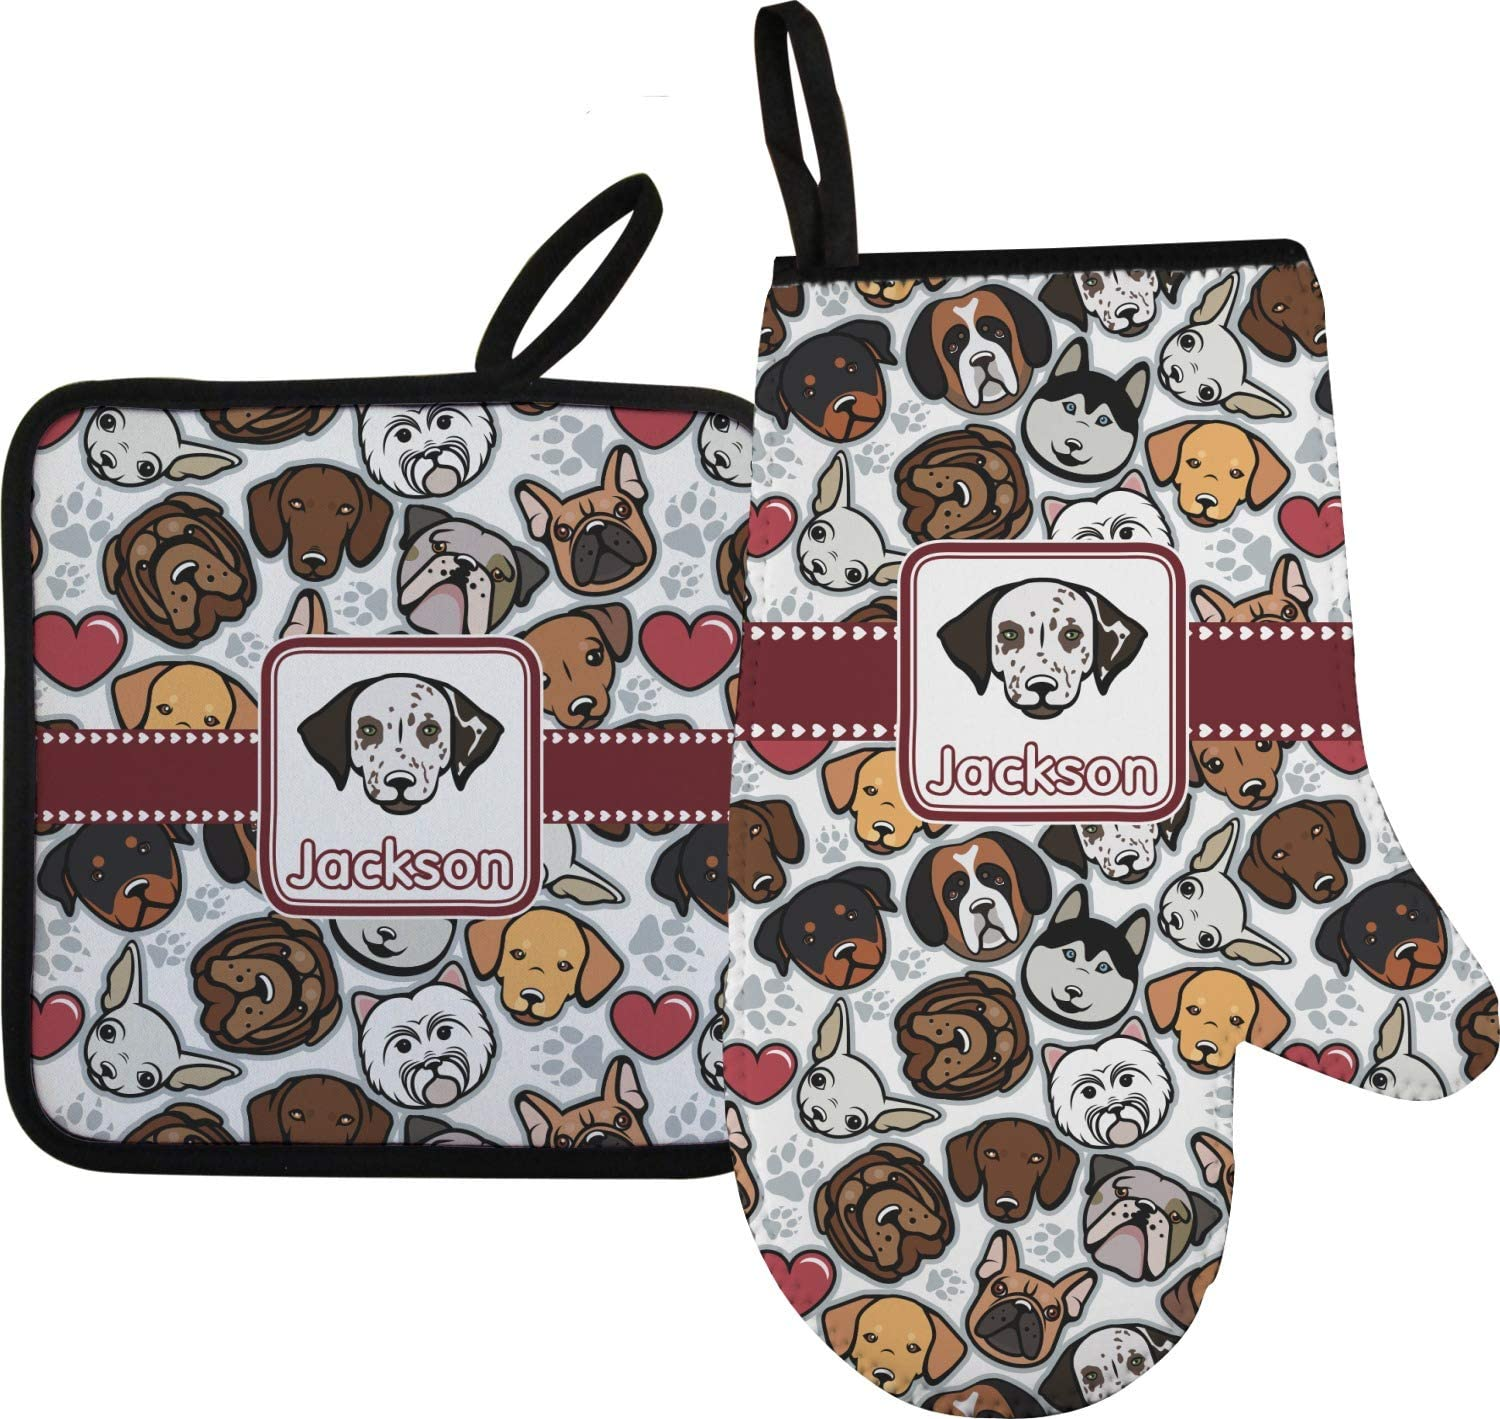 RNK Shops Dog Faces Oven Mitt & Pot Holder (Personalized)